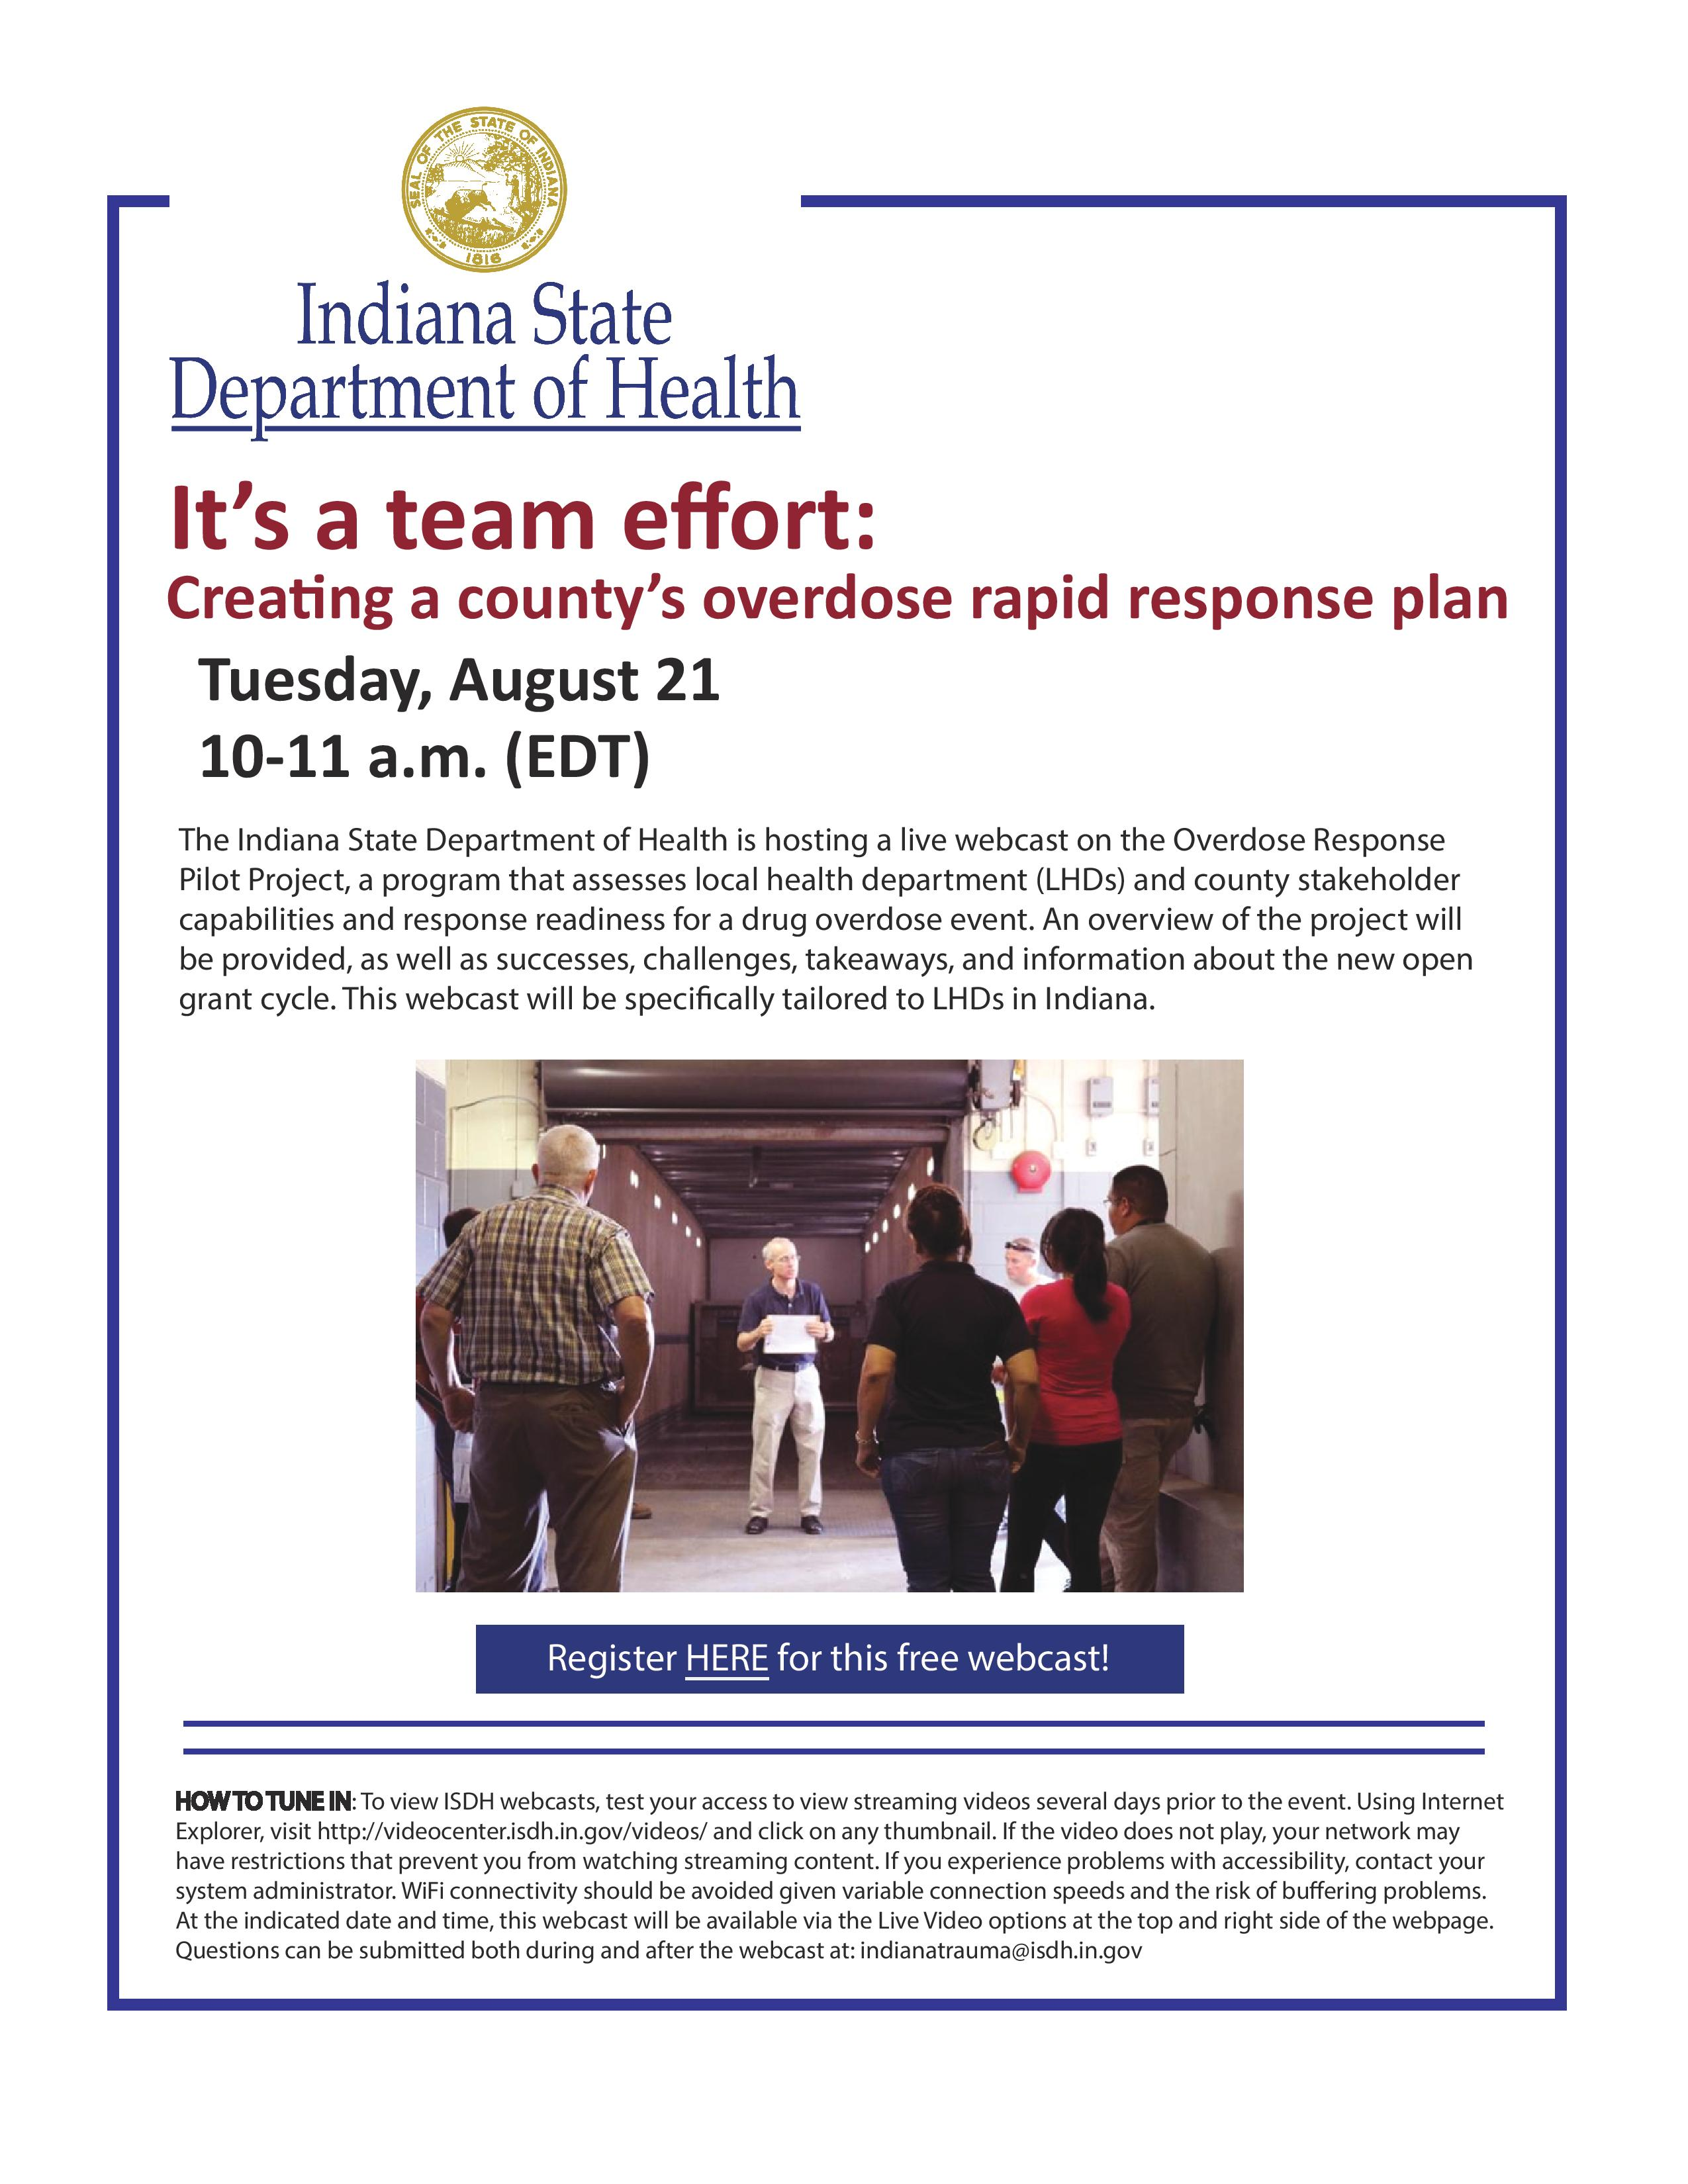 ISDH overdose response project webcast